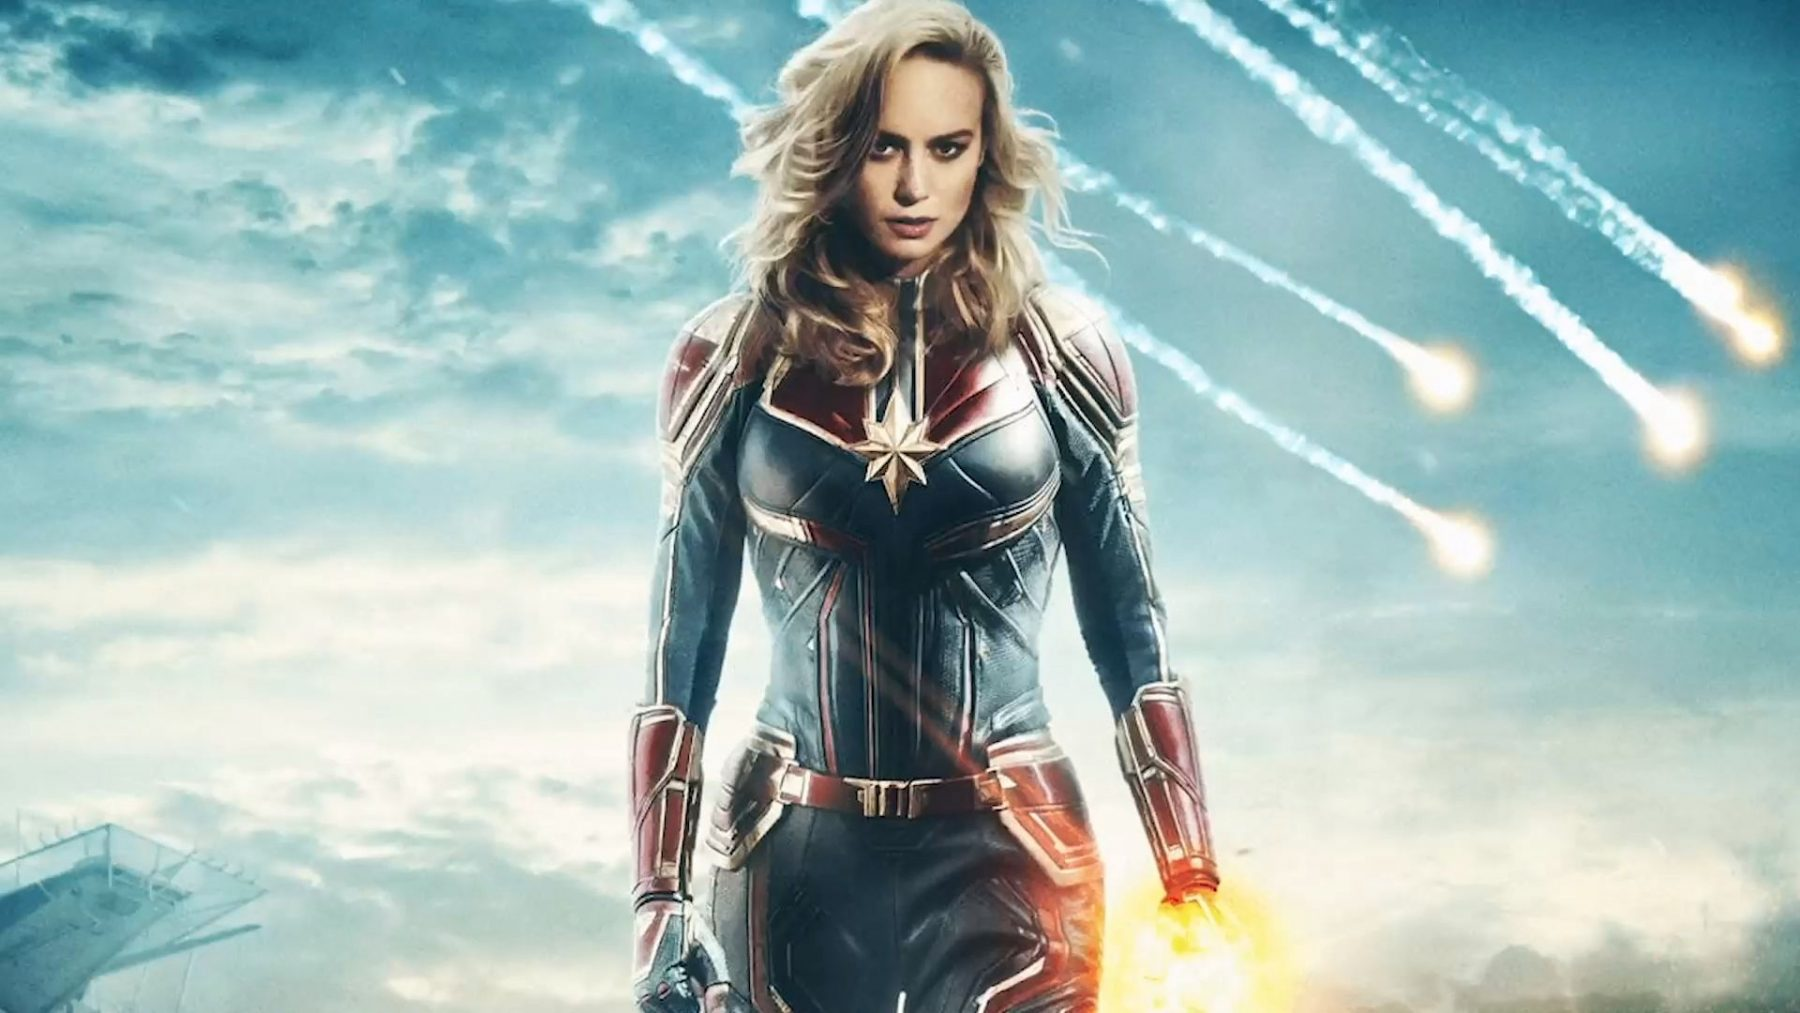 captain marvel hd wallpapers | 7wallpapers